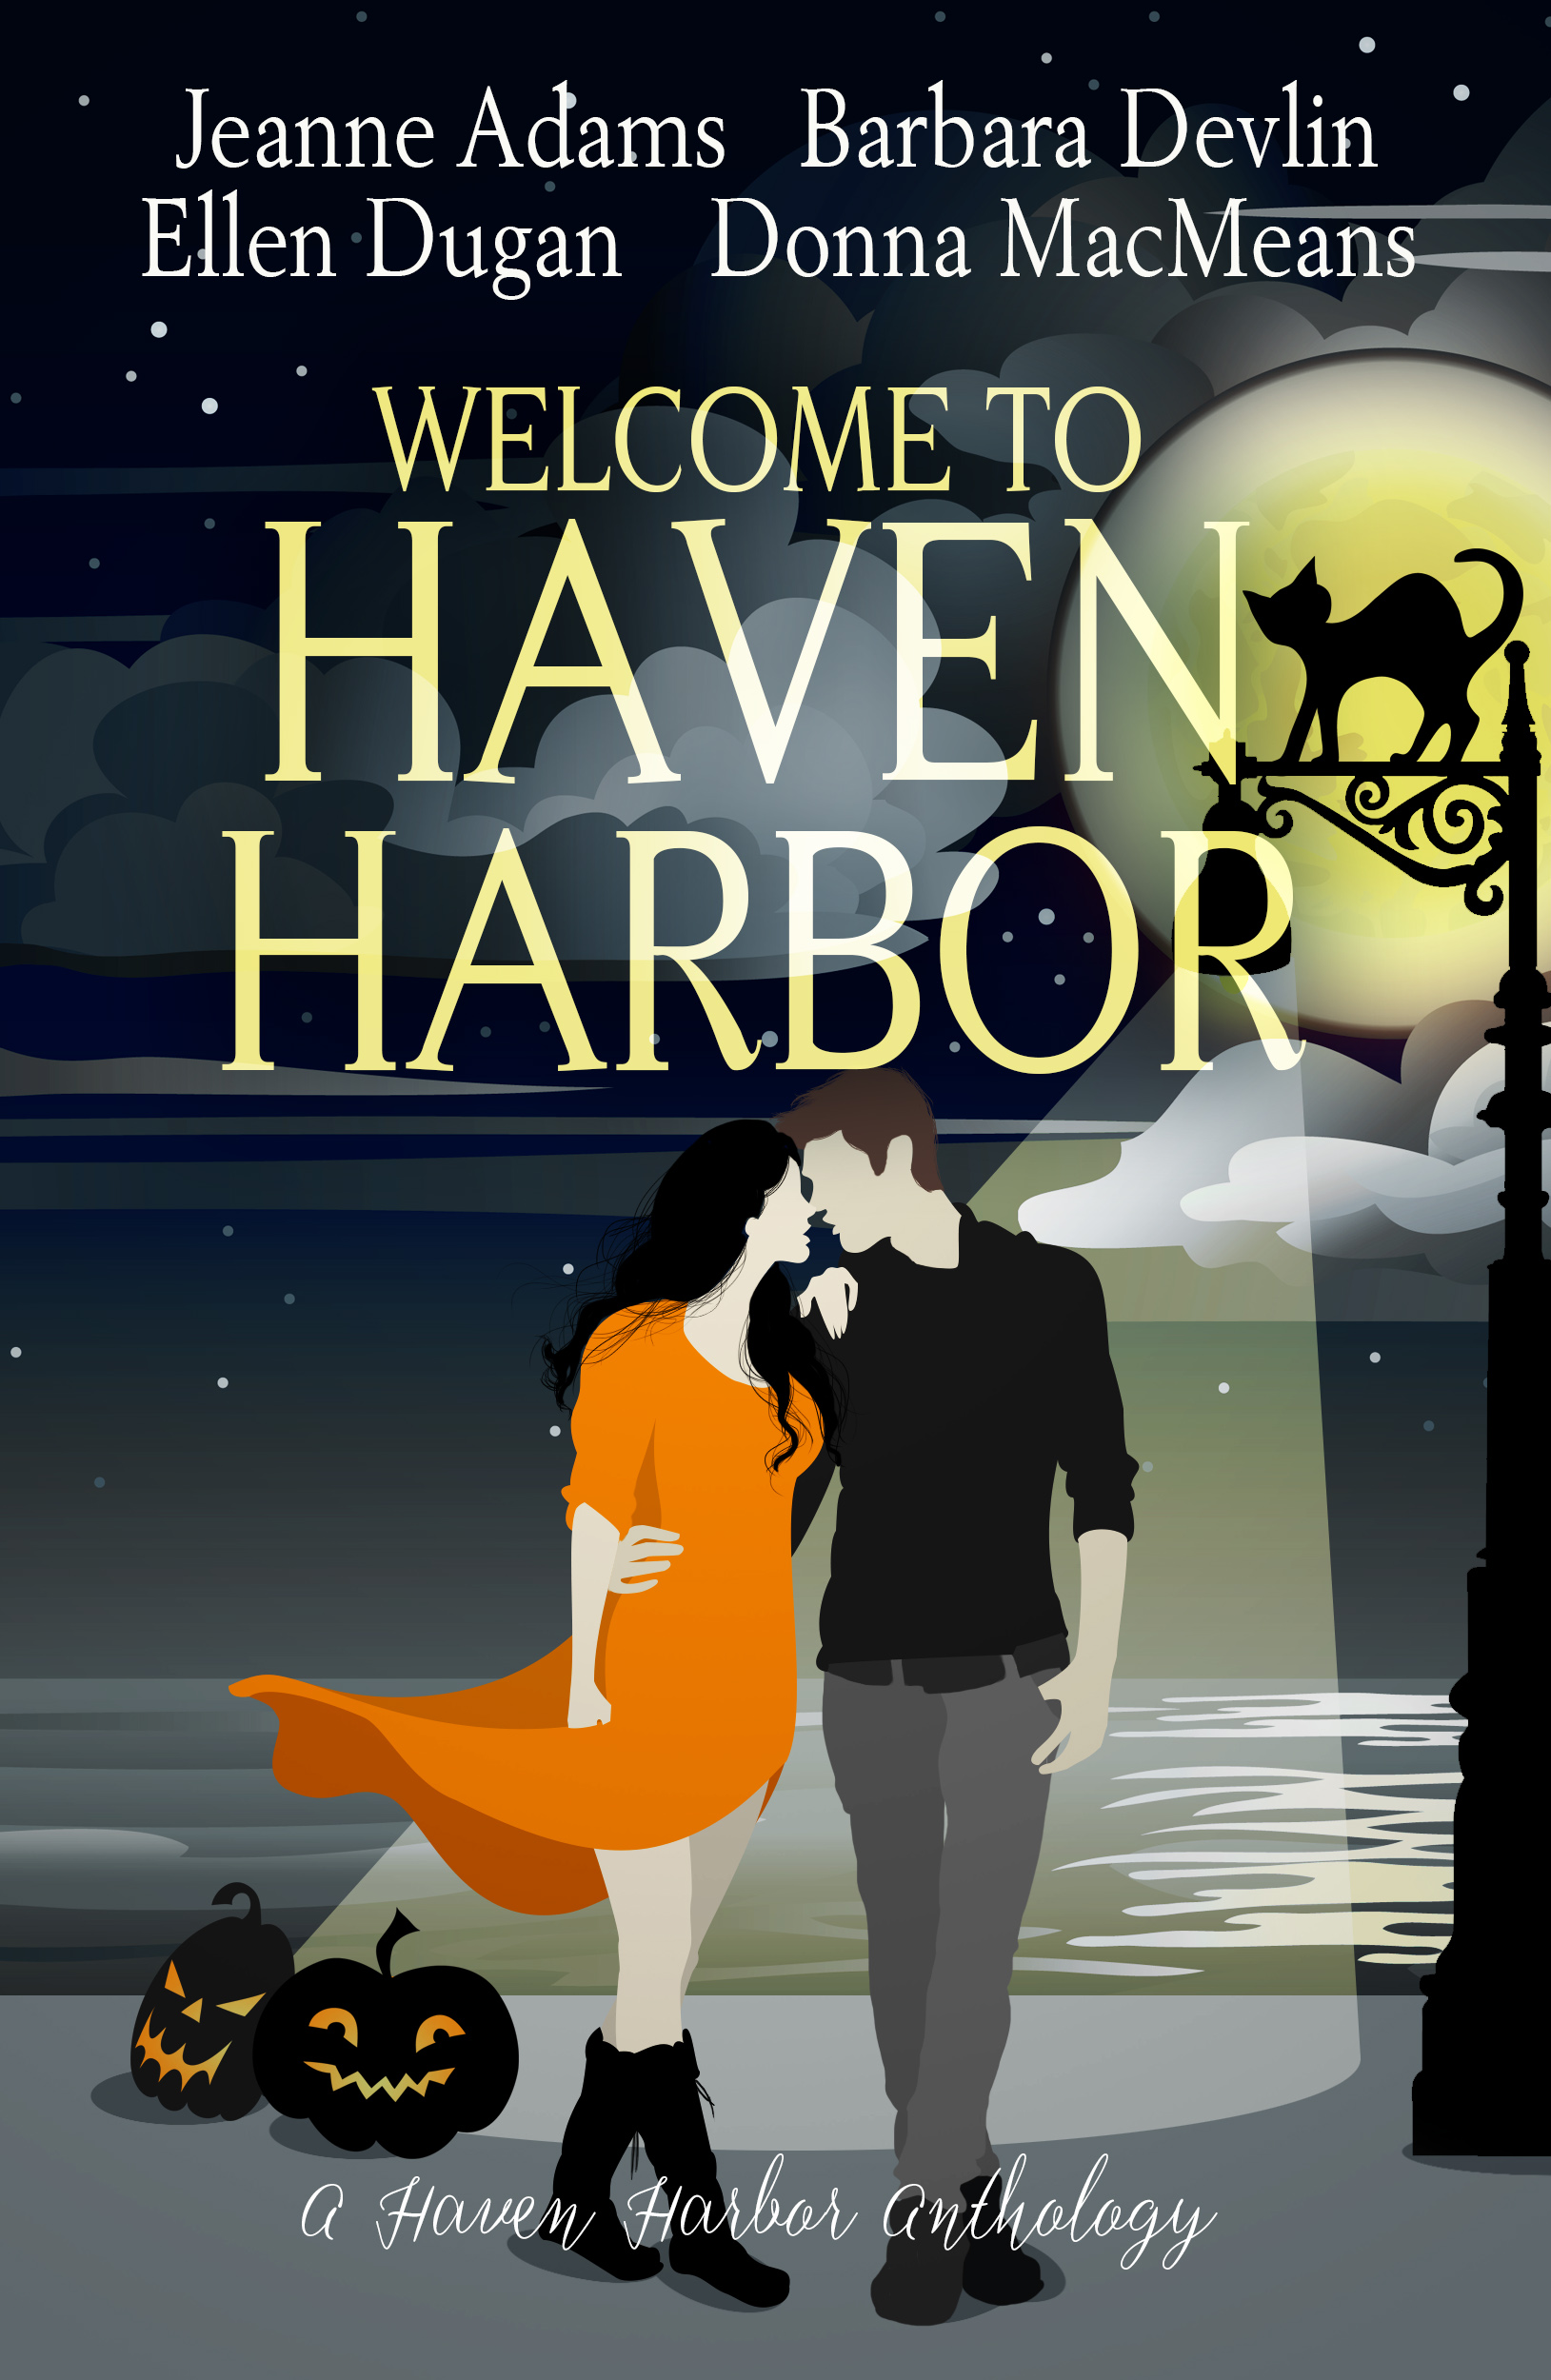 Welcome to Haven Harbor